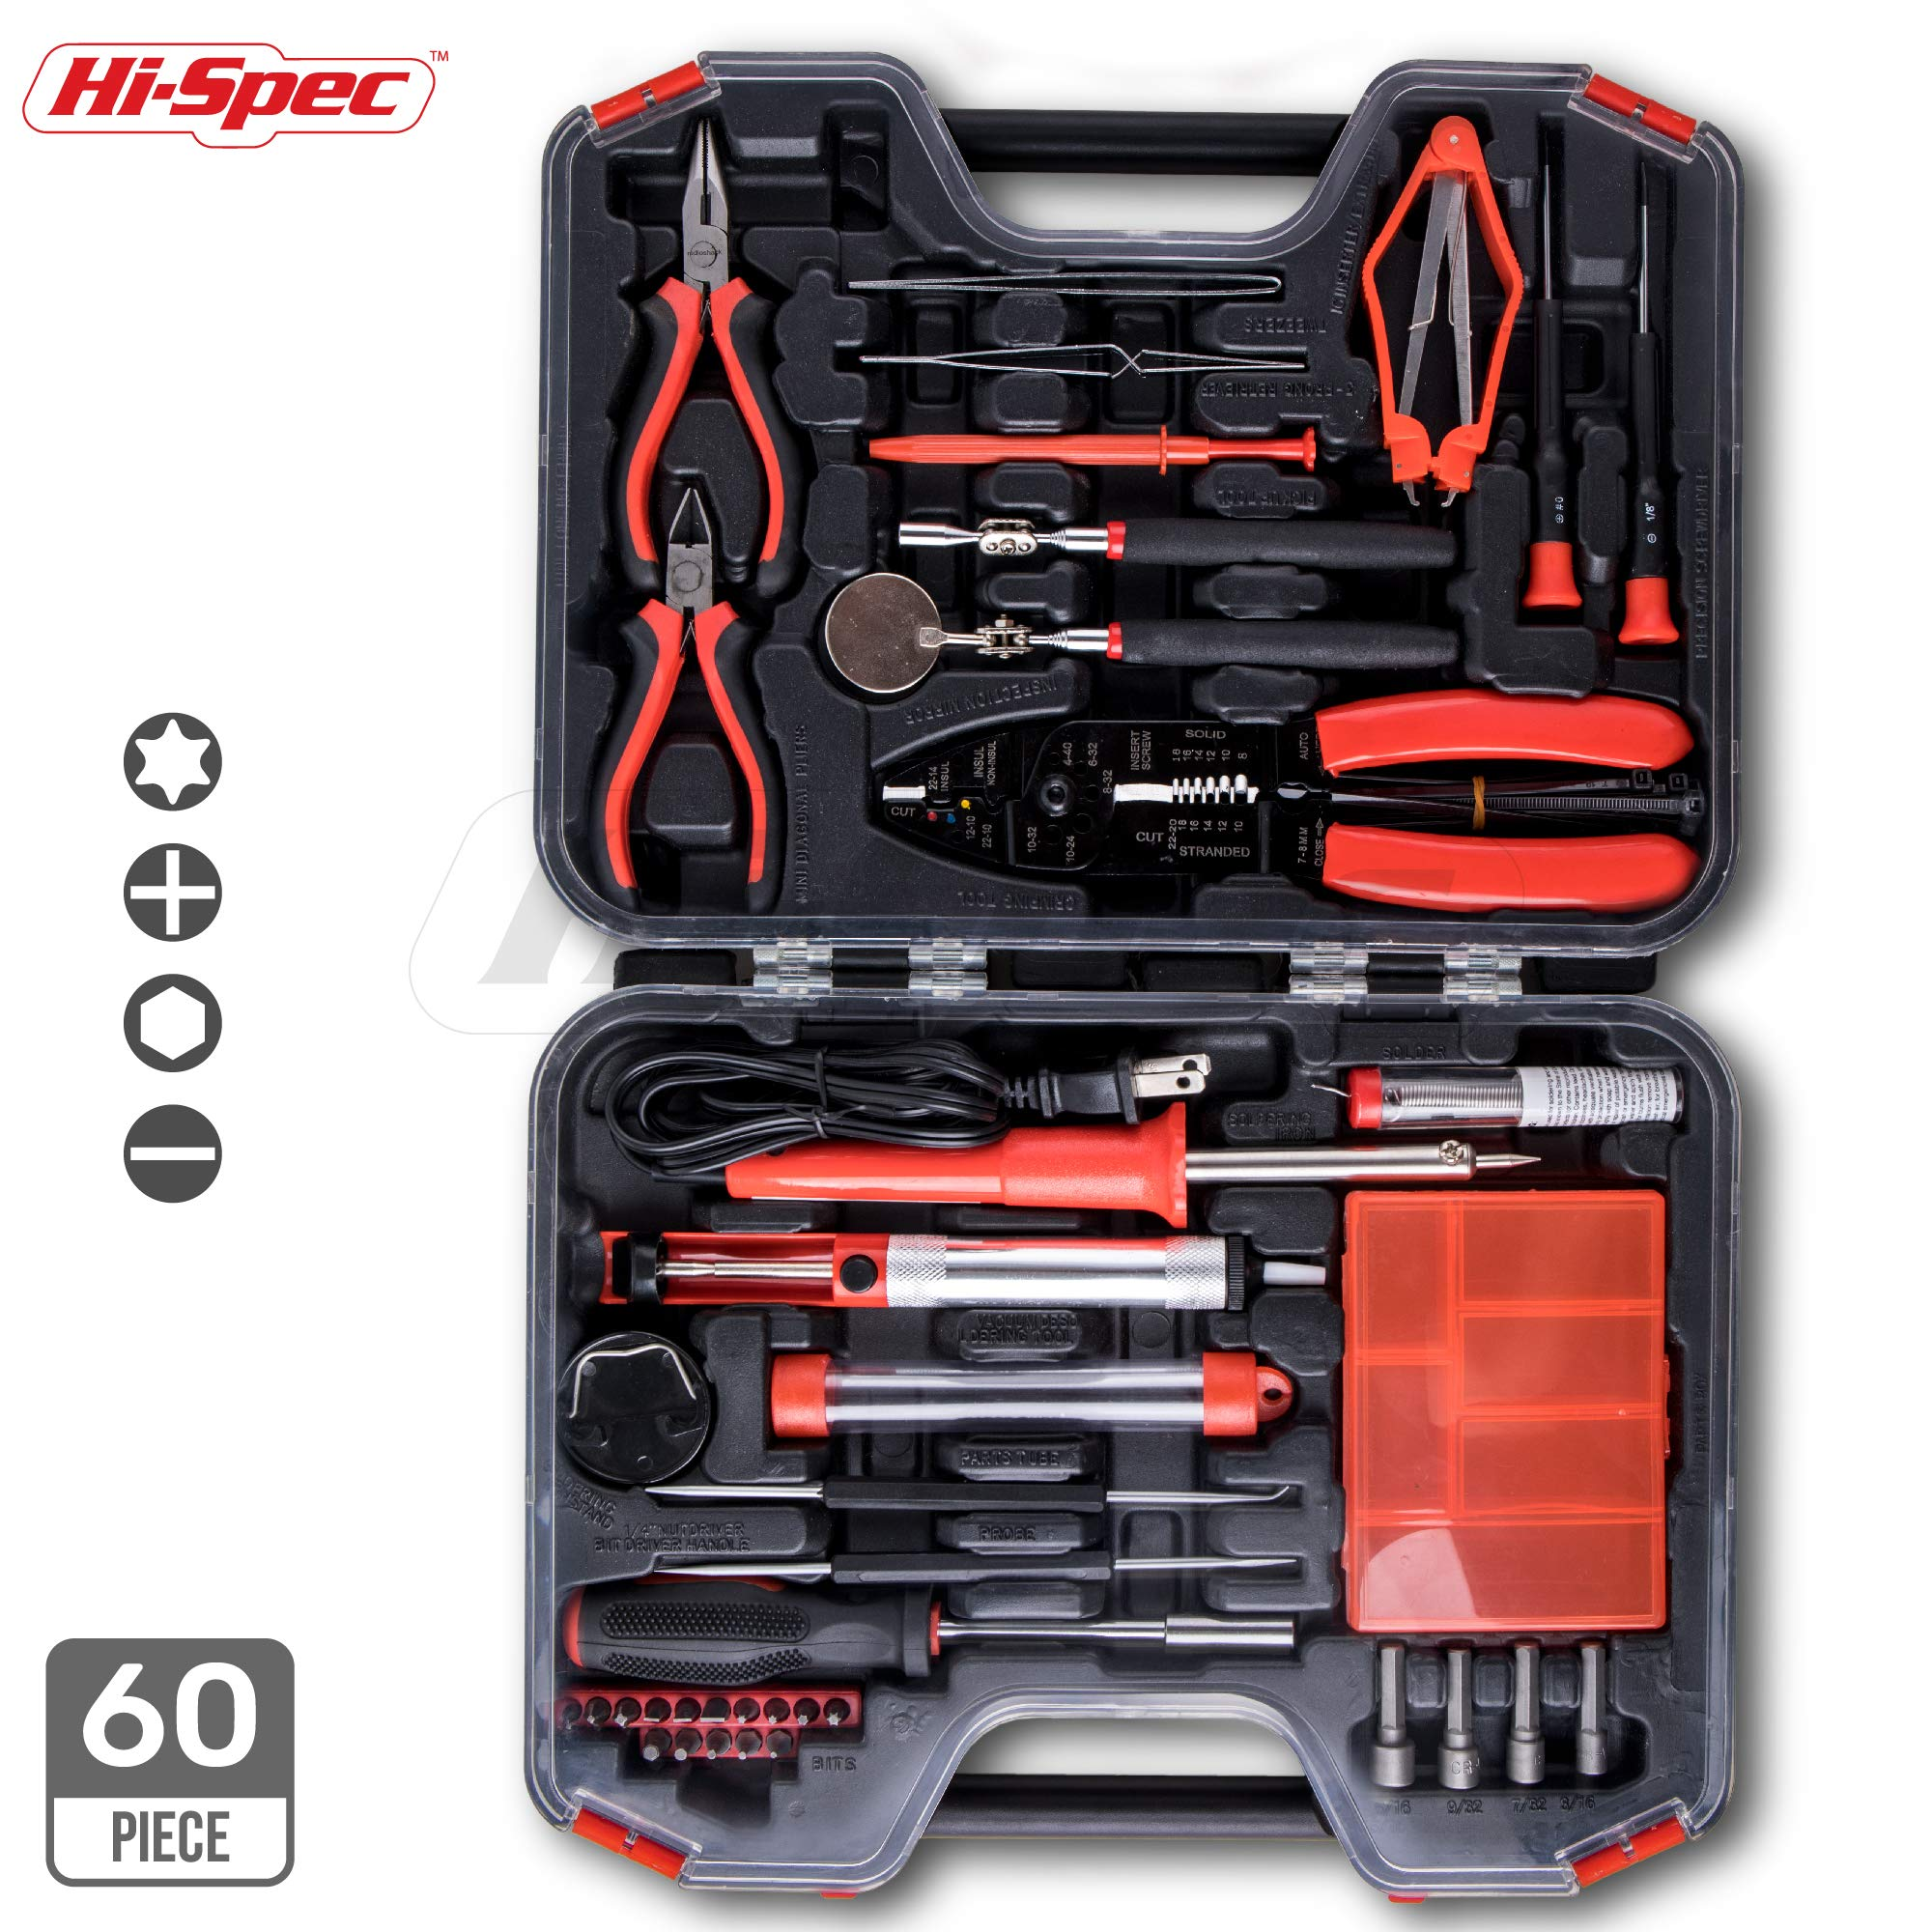 Hi-Spec 60 Piece Electronics Electrical Engineer DIY Tool Kit Set with 30W Soldering Iron, Solder Wire Desoldering Pump, 3-in-1 Wire Stripper / Cutter / Bolt Cutter & Precision Tools In Tool Case